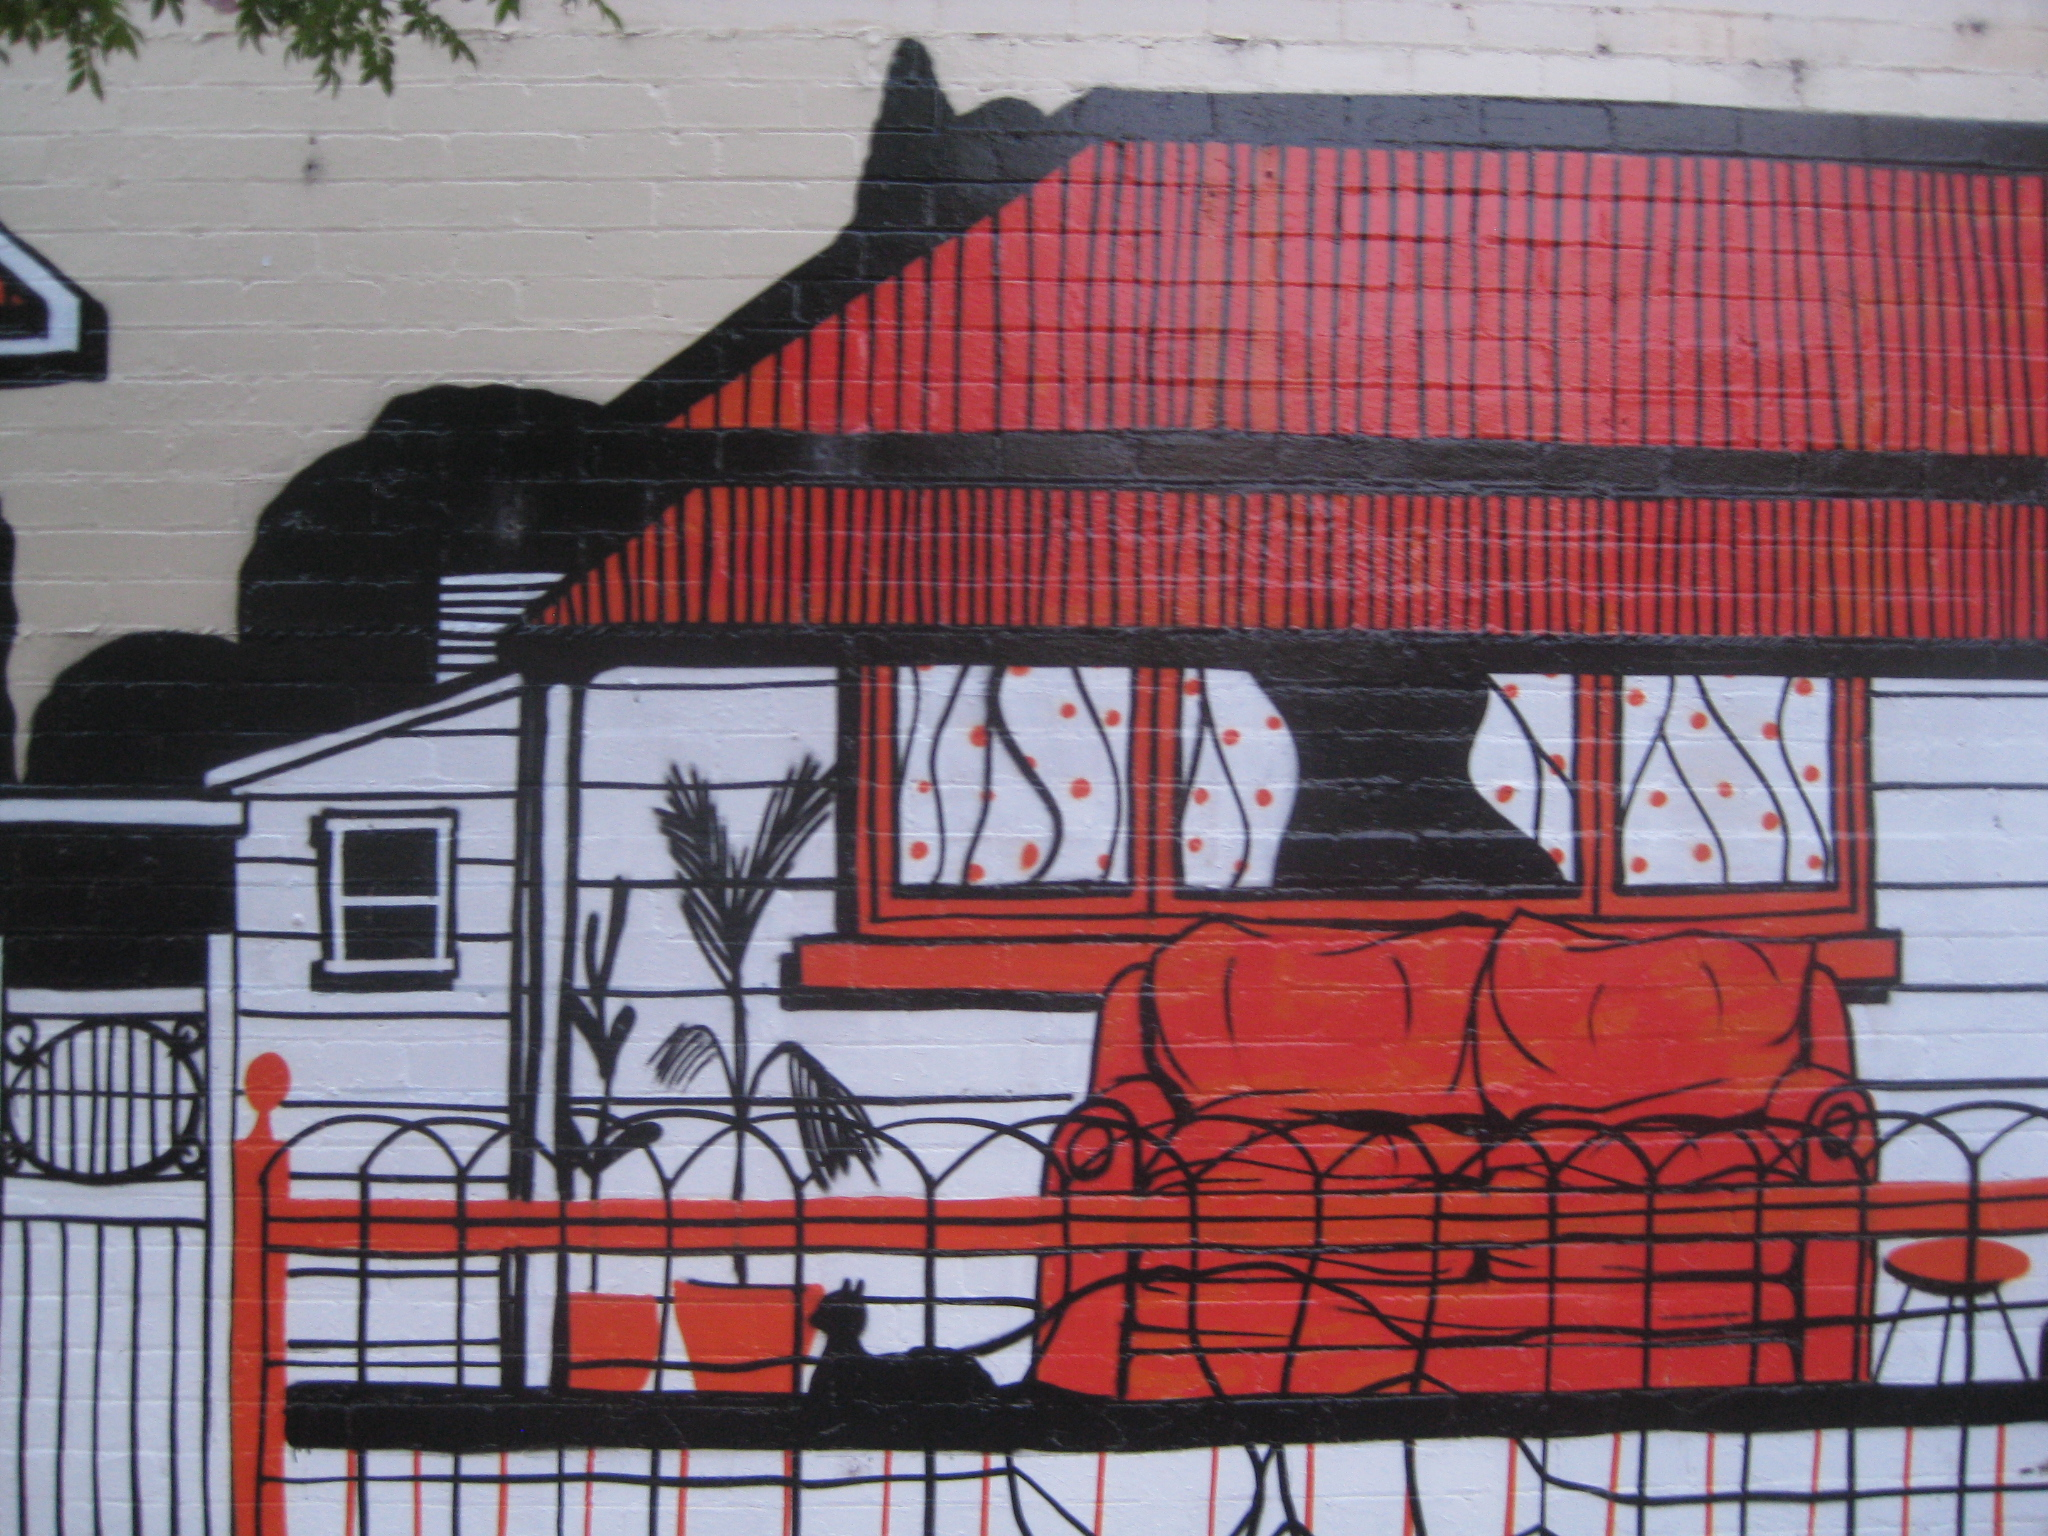 footscray graffiti orange black white house with a couch and cat on the porch